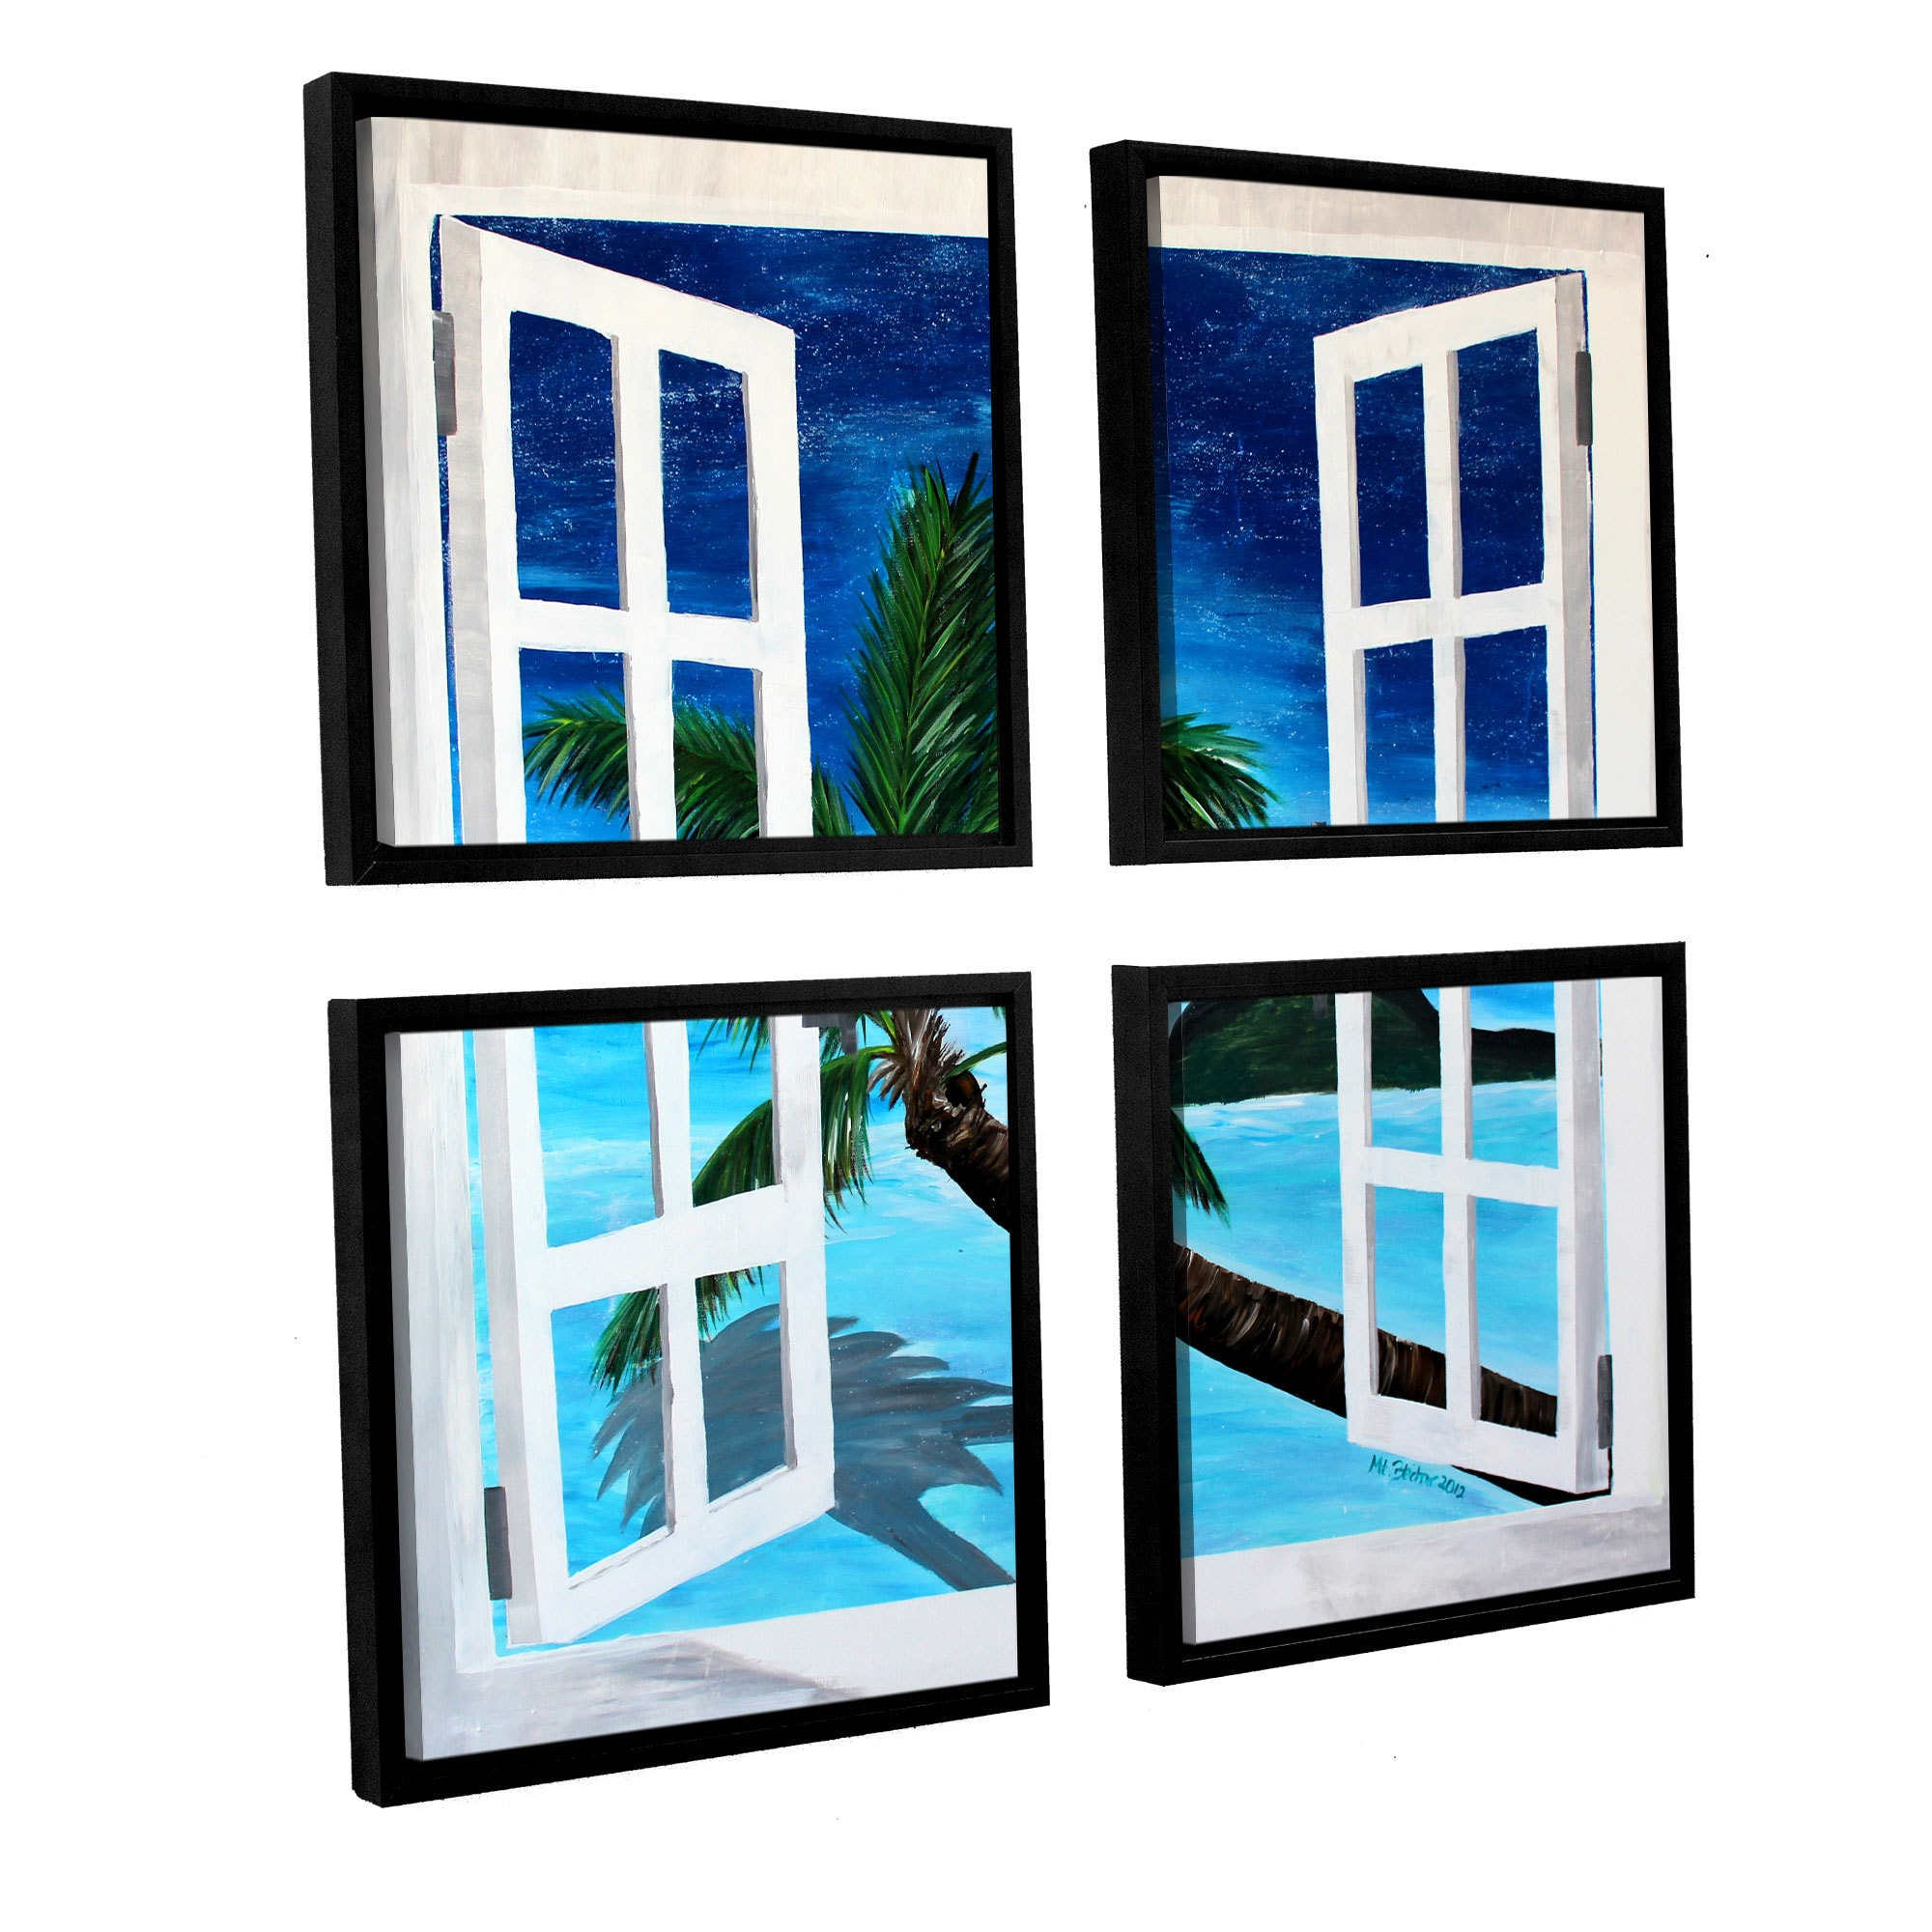 Artwall Marcus Martina Bleichner S Palm View Window 4 Piece Floater Framed Canvas Sqare Set Overstock 11375349